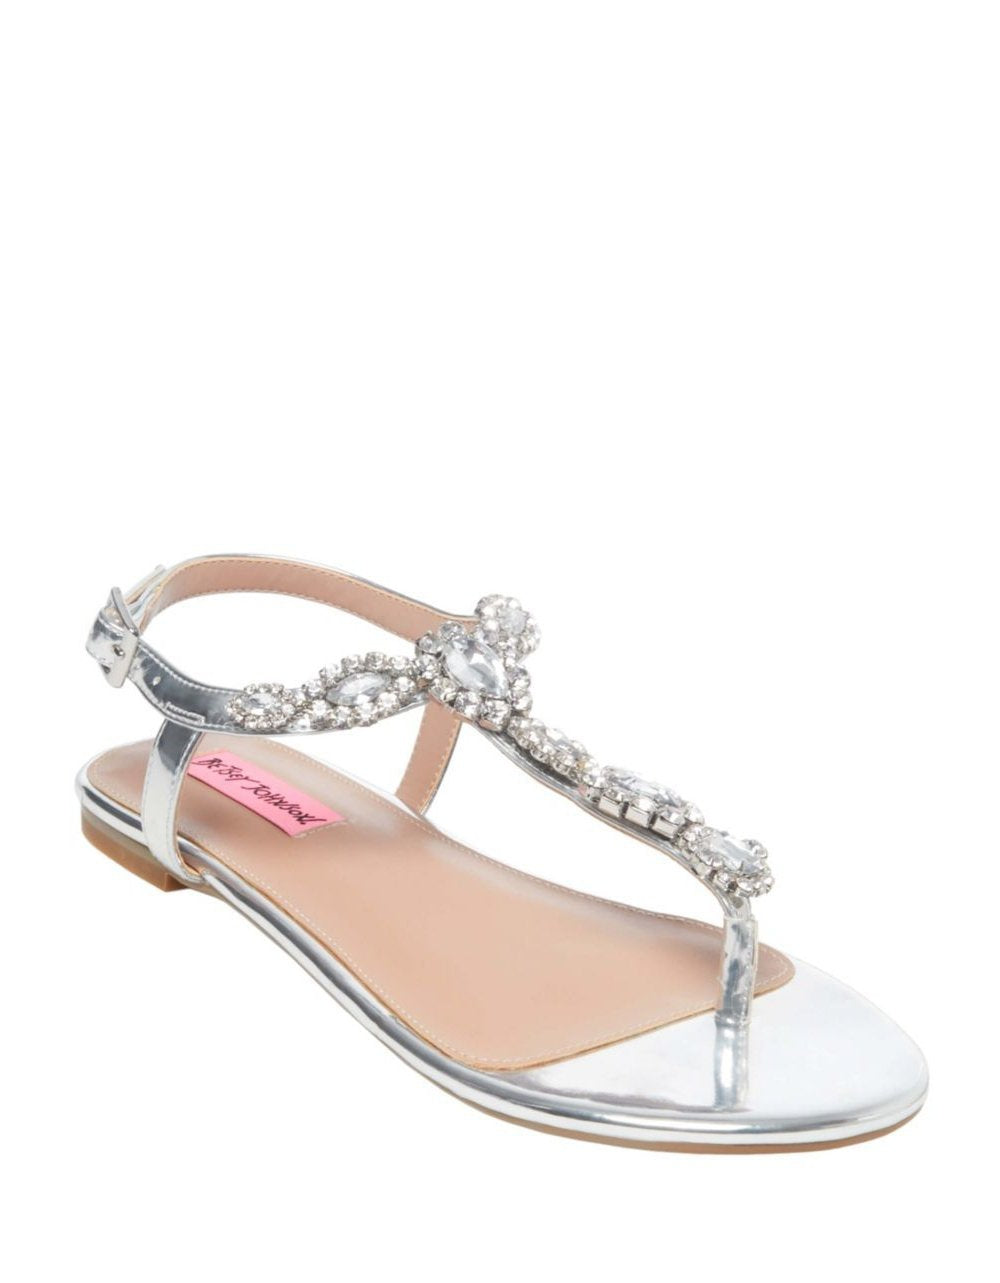 CRYSTAL SILVER - SHOES - Betsey Johnson